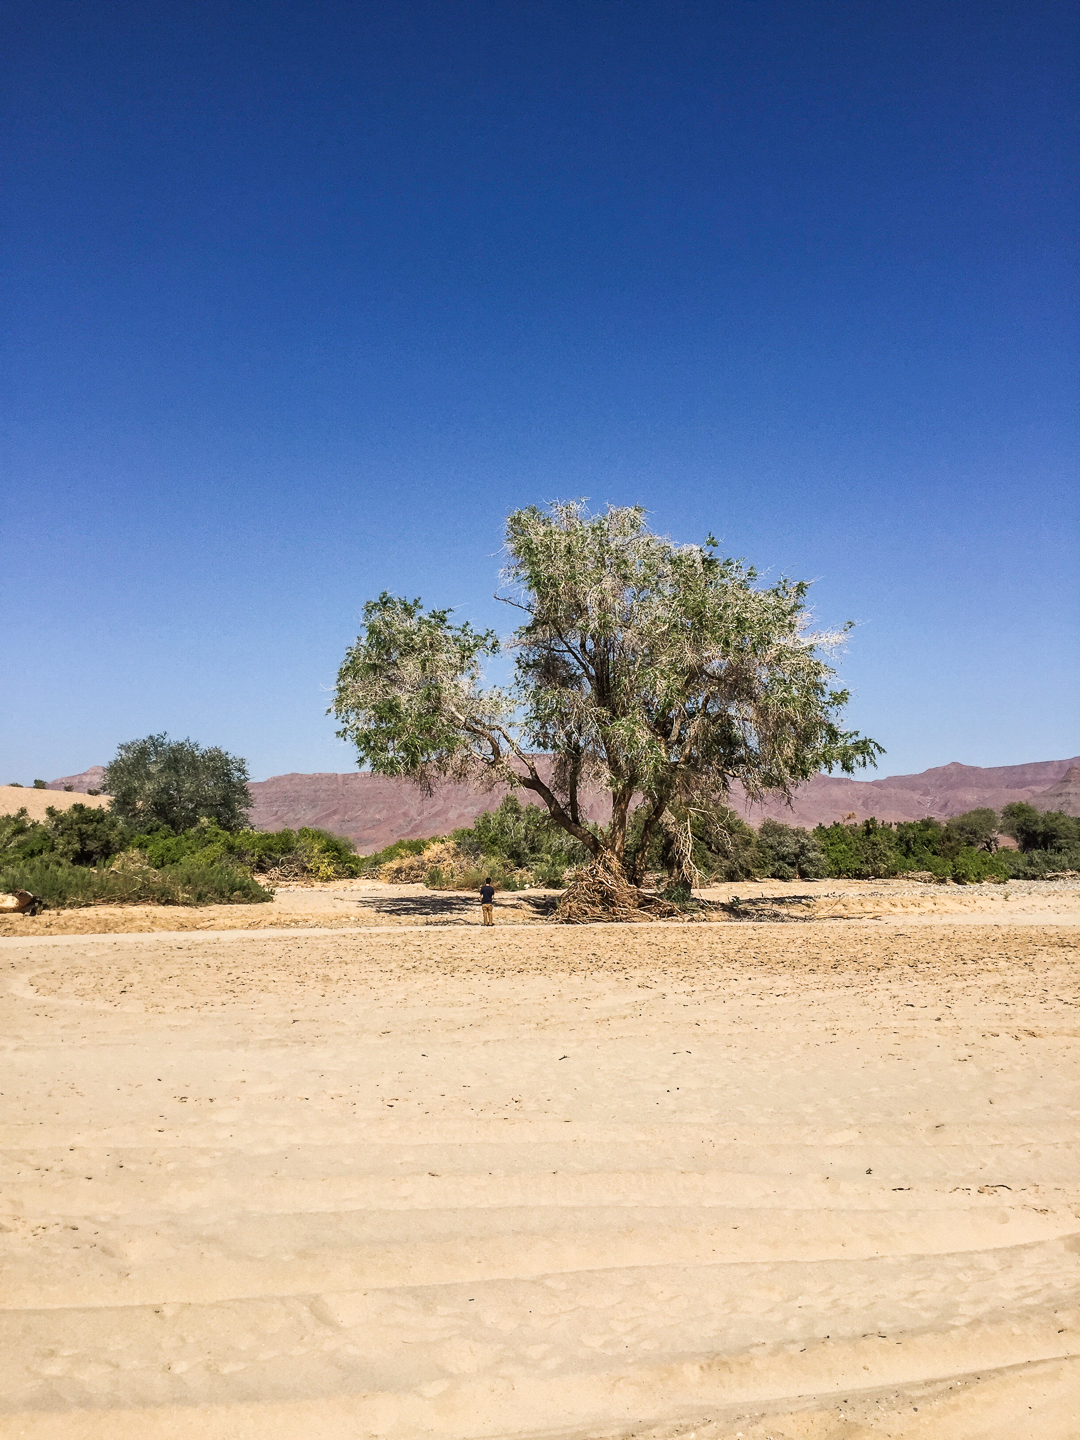 Answering a call of Nature, in the middle of Nature. After years of drought, I think the tree appreciated it. Purros, Namibia. June, 2016.